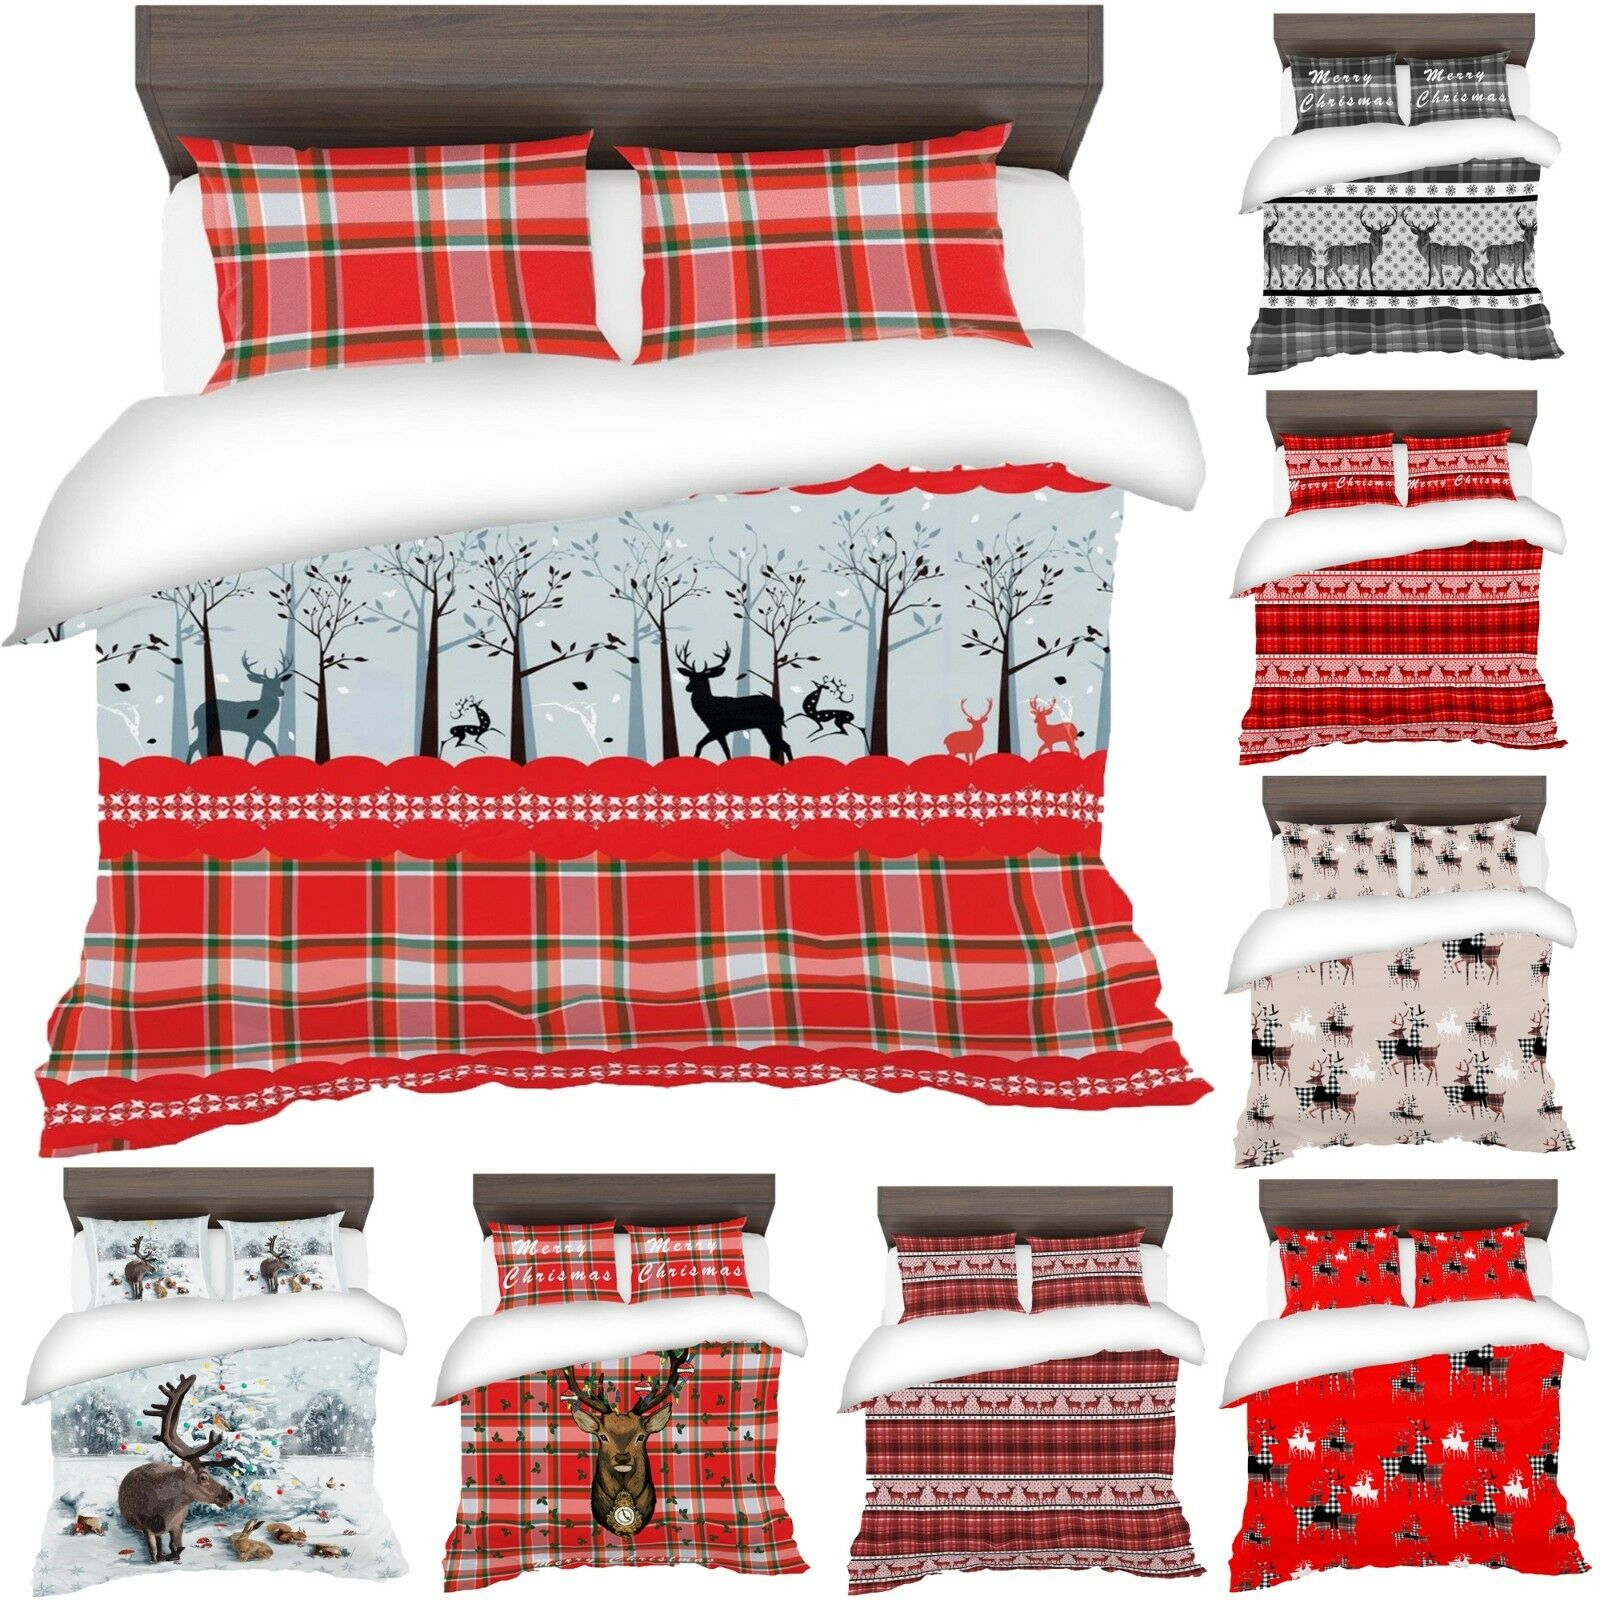 3D Father Christmas Tree Santa Claus Reindeer Stag Quilt Duvet Cover Bedding Set